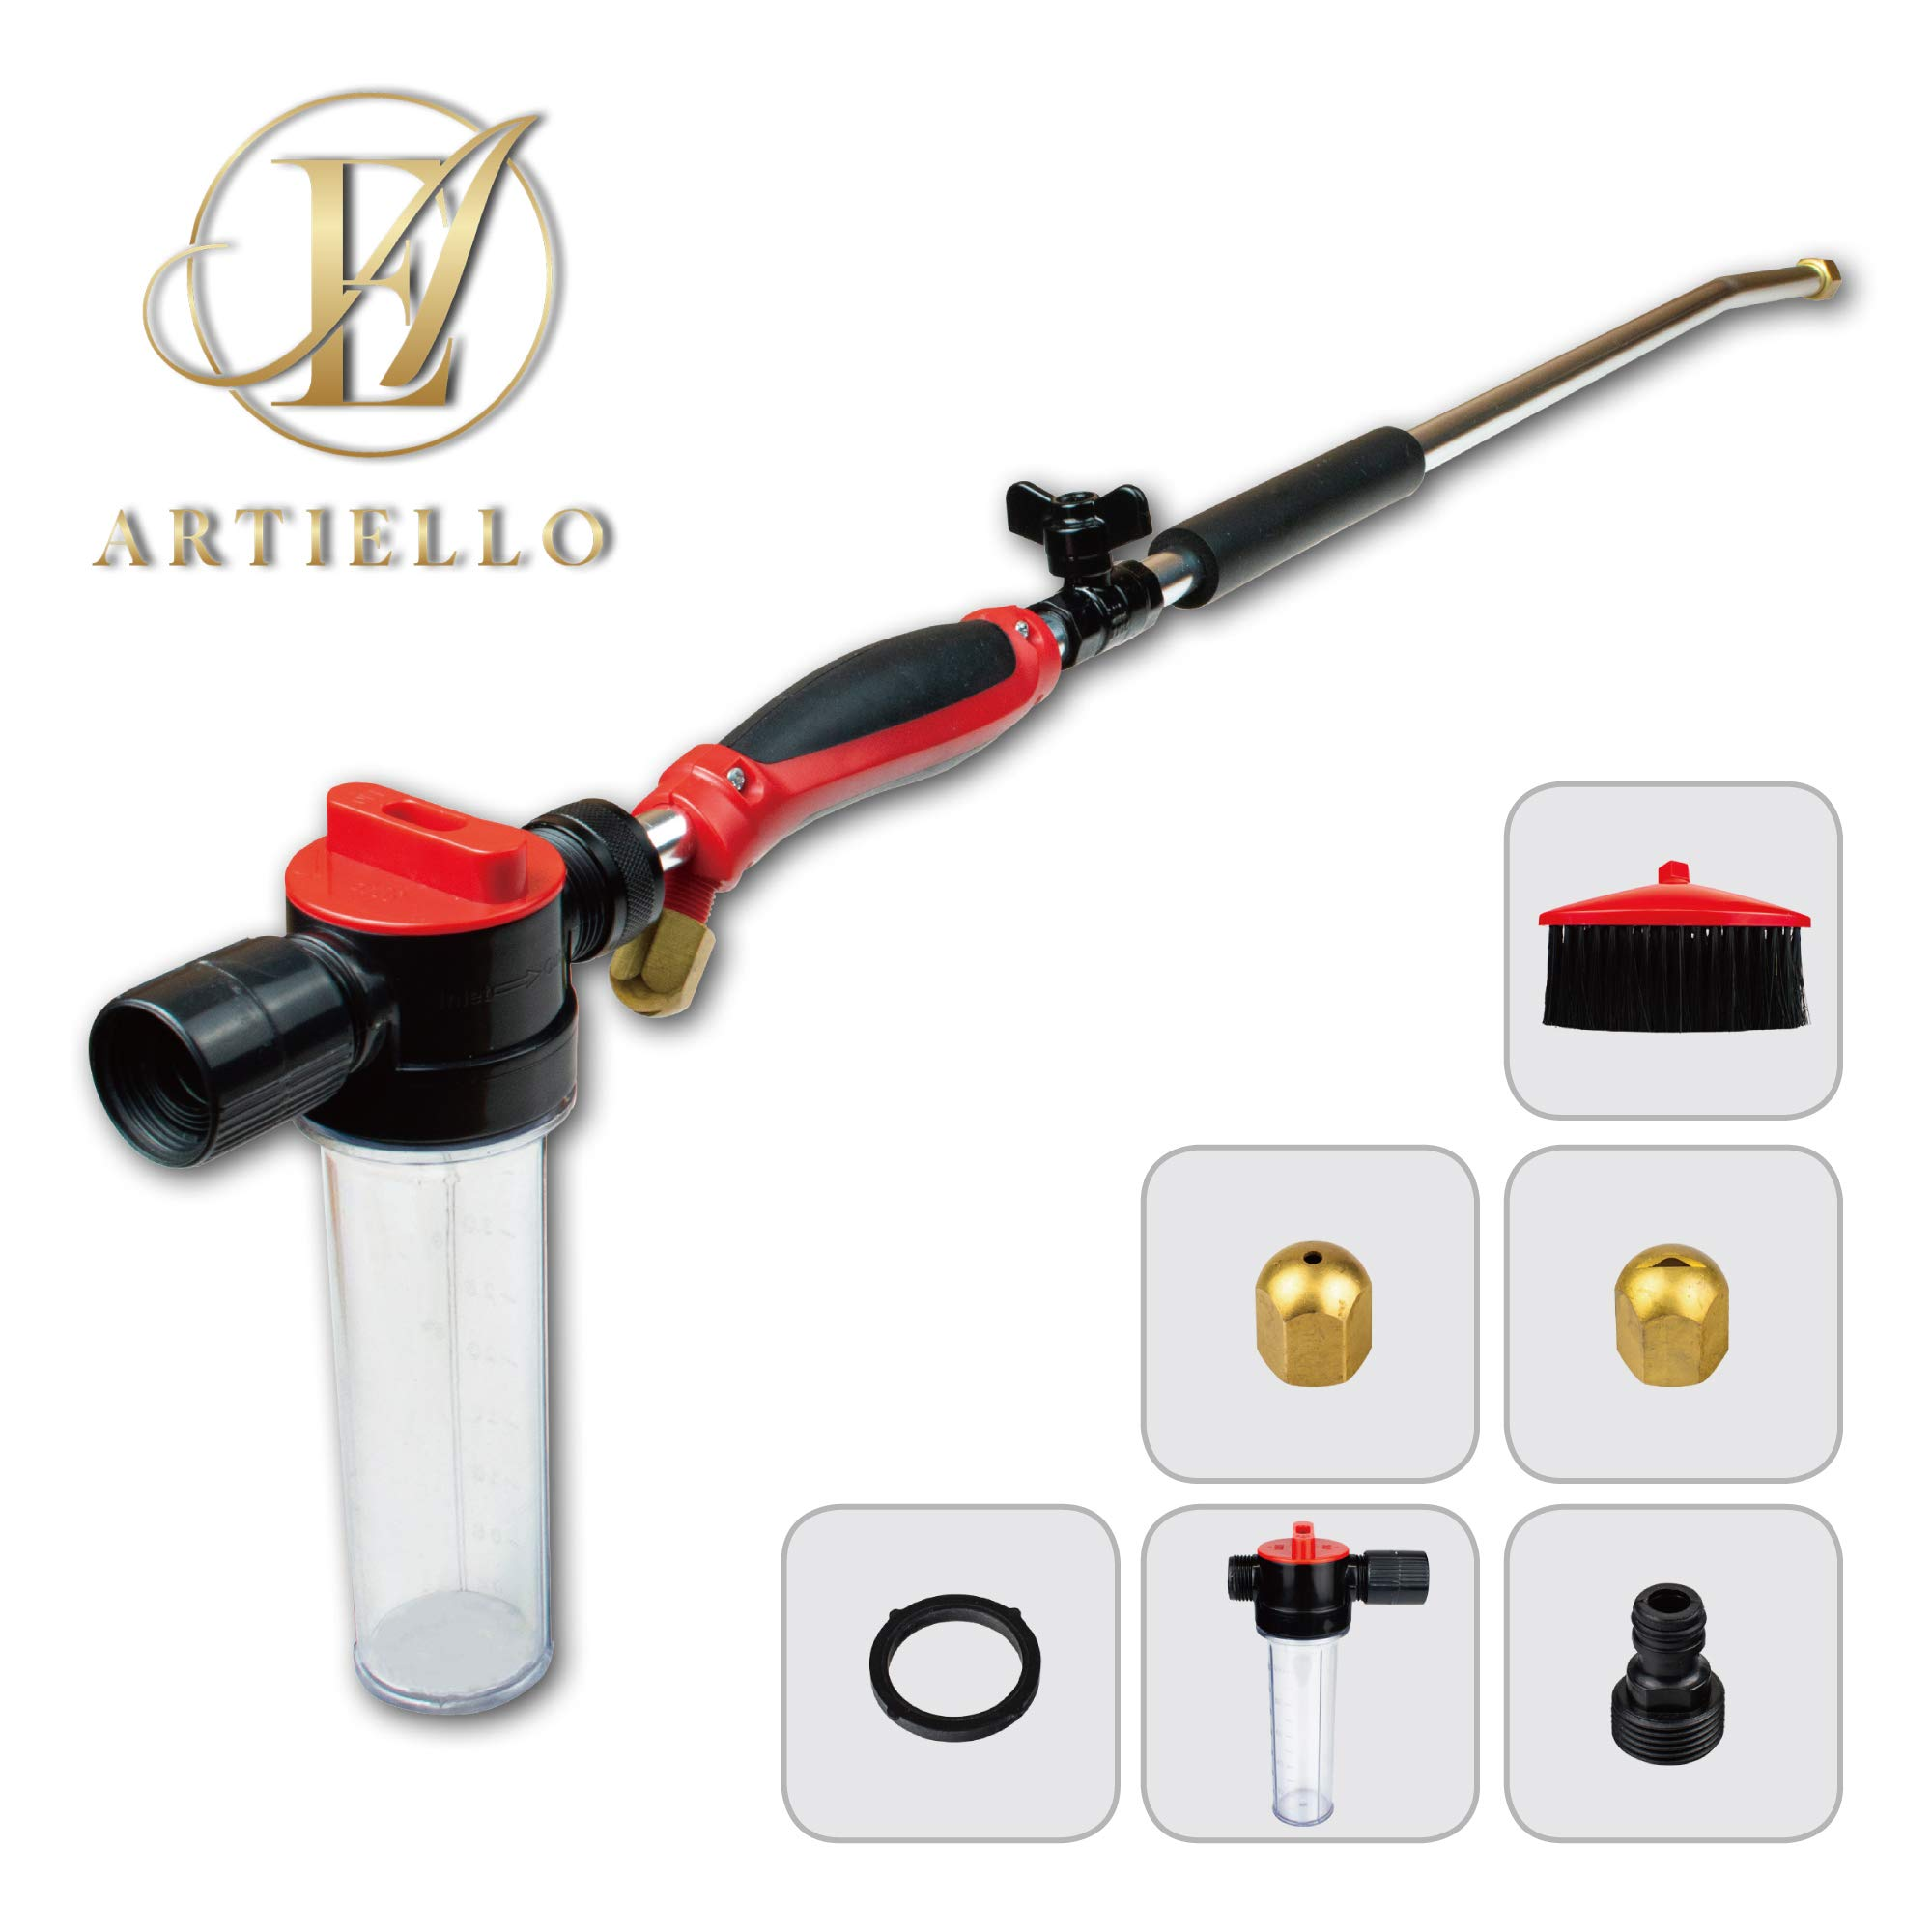 ARTIELLO Hydro Jet High Pressure Power Washer Wand with Soap Dispenser and Brush, 30 Inch Extendable Sprayer Hose Nozzle with Patio and Garden Hose End, Car Washing and Glass Cleaning Tool with 2 Tips by ARTIELLO